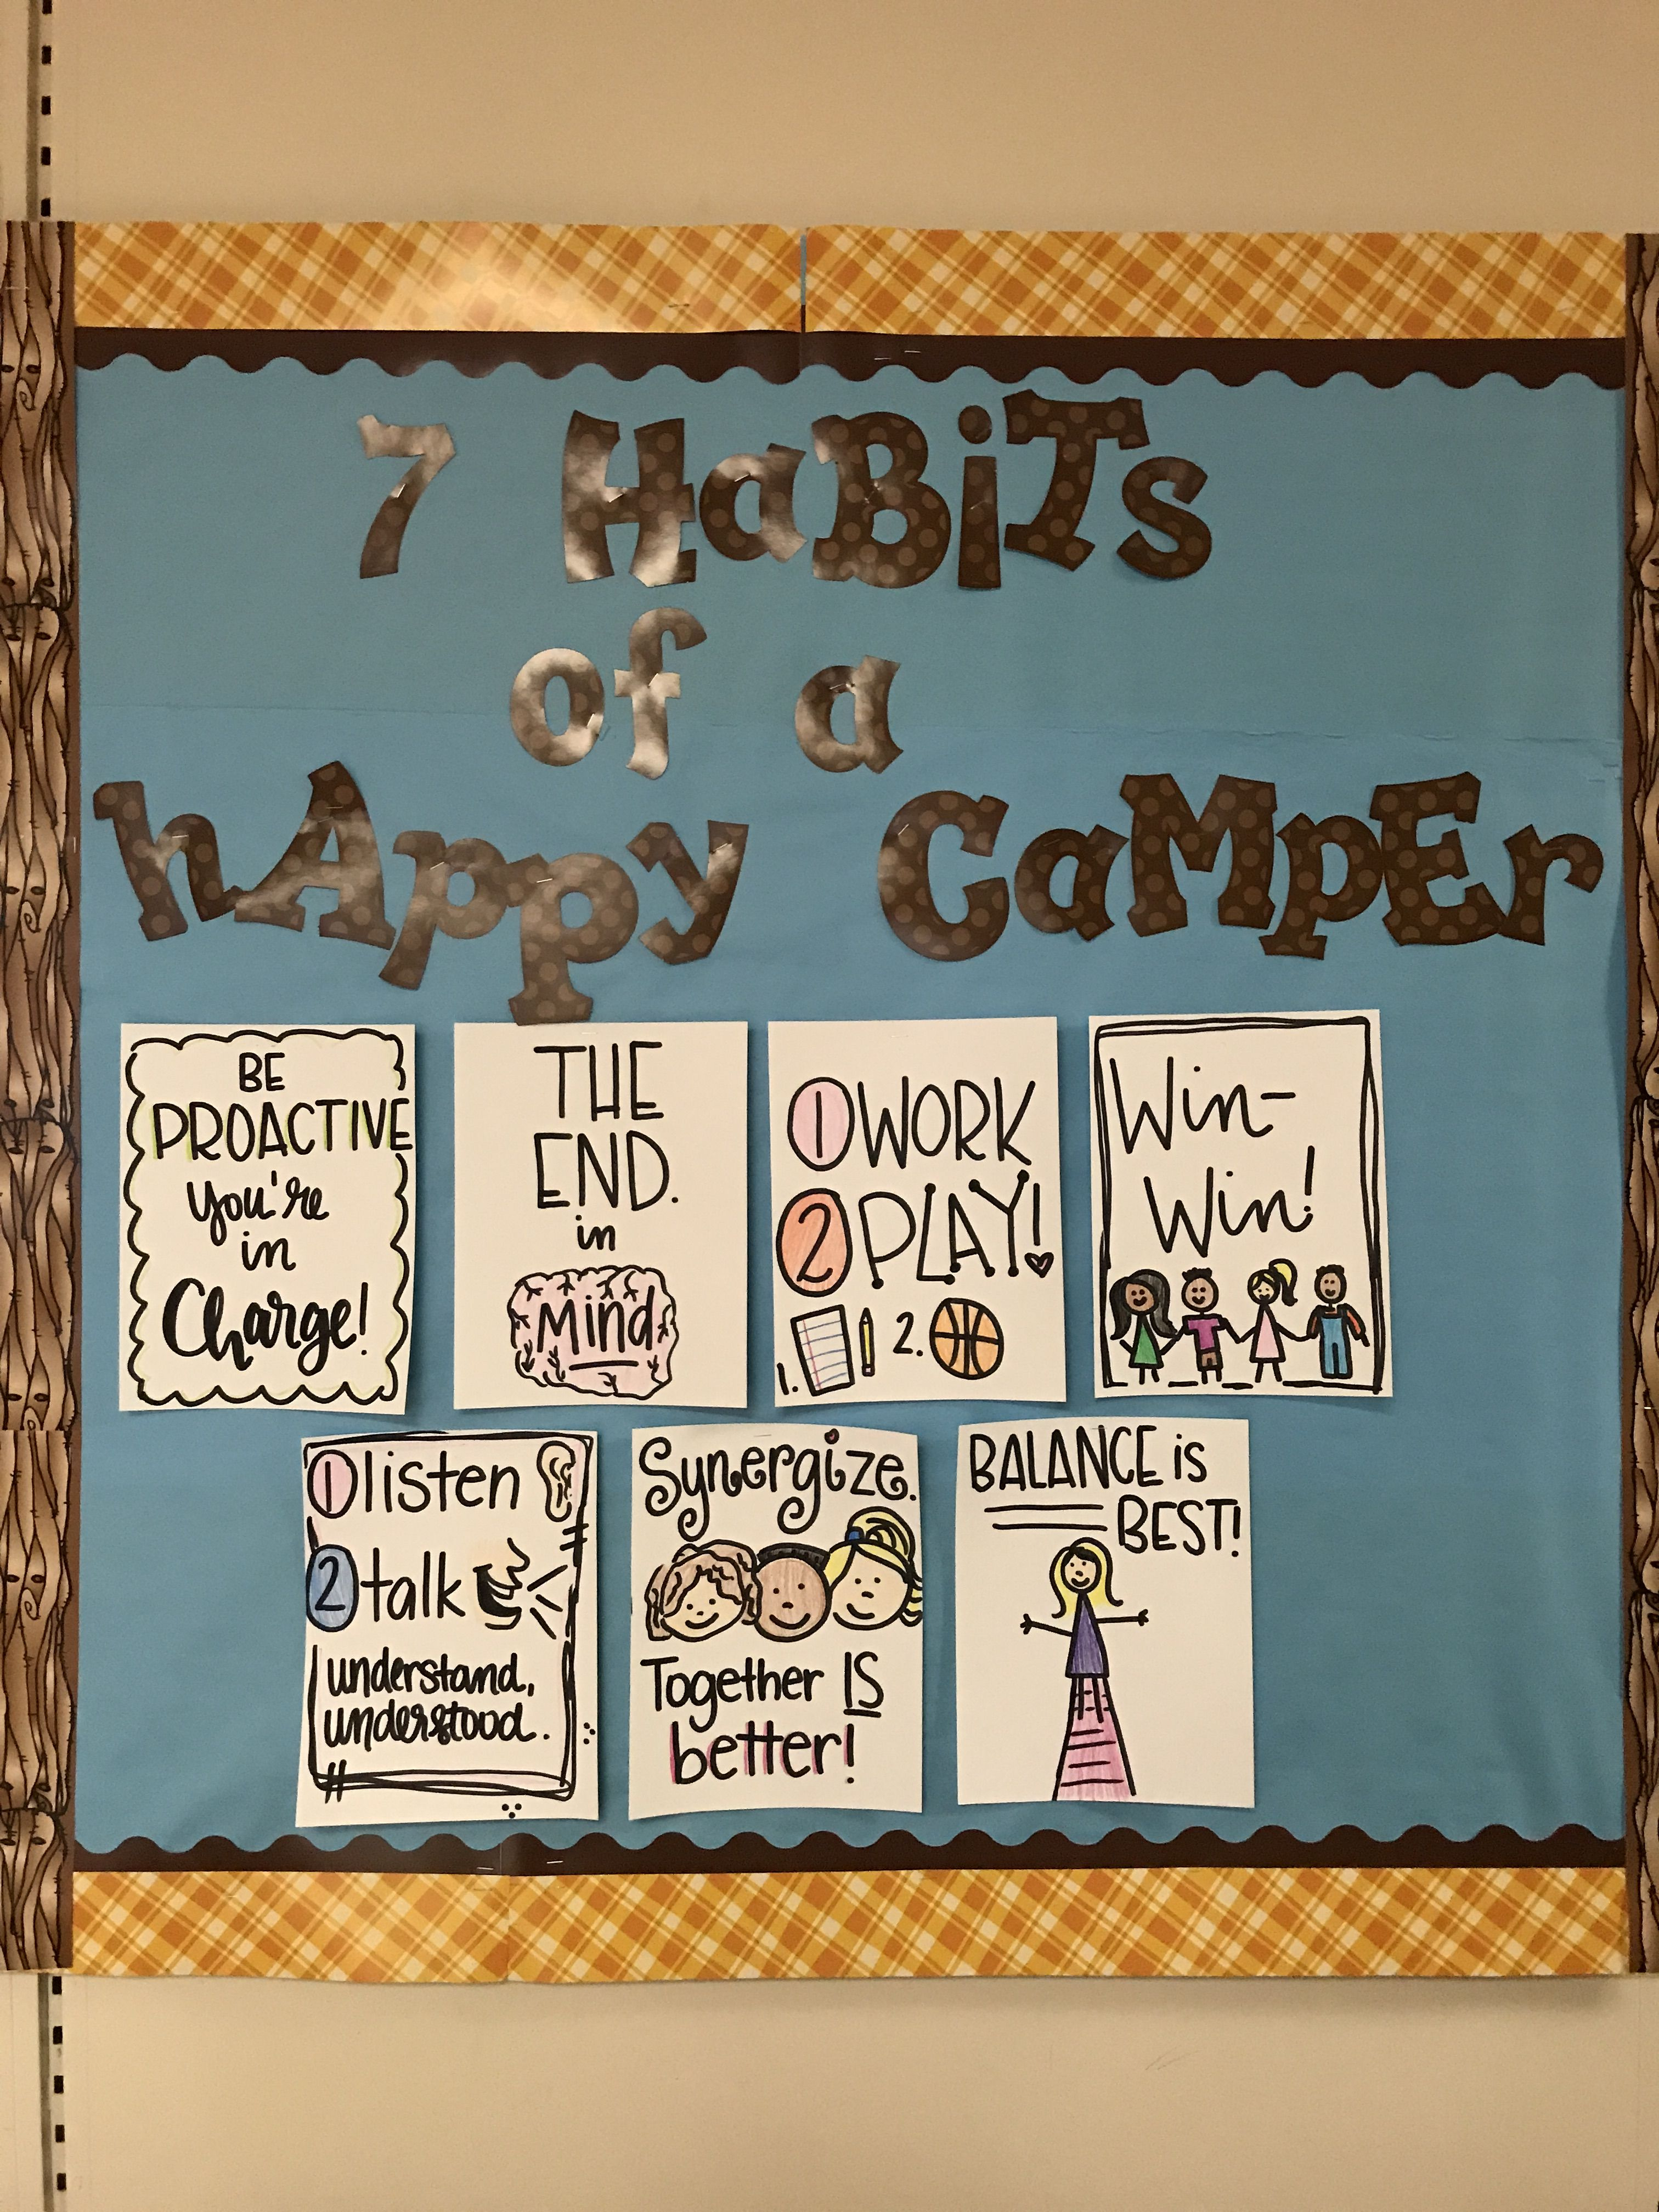 7 Habits Of A Happy Kid Posters For Classroom